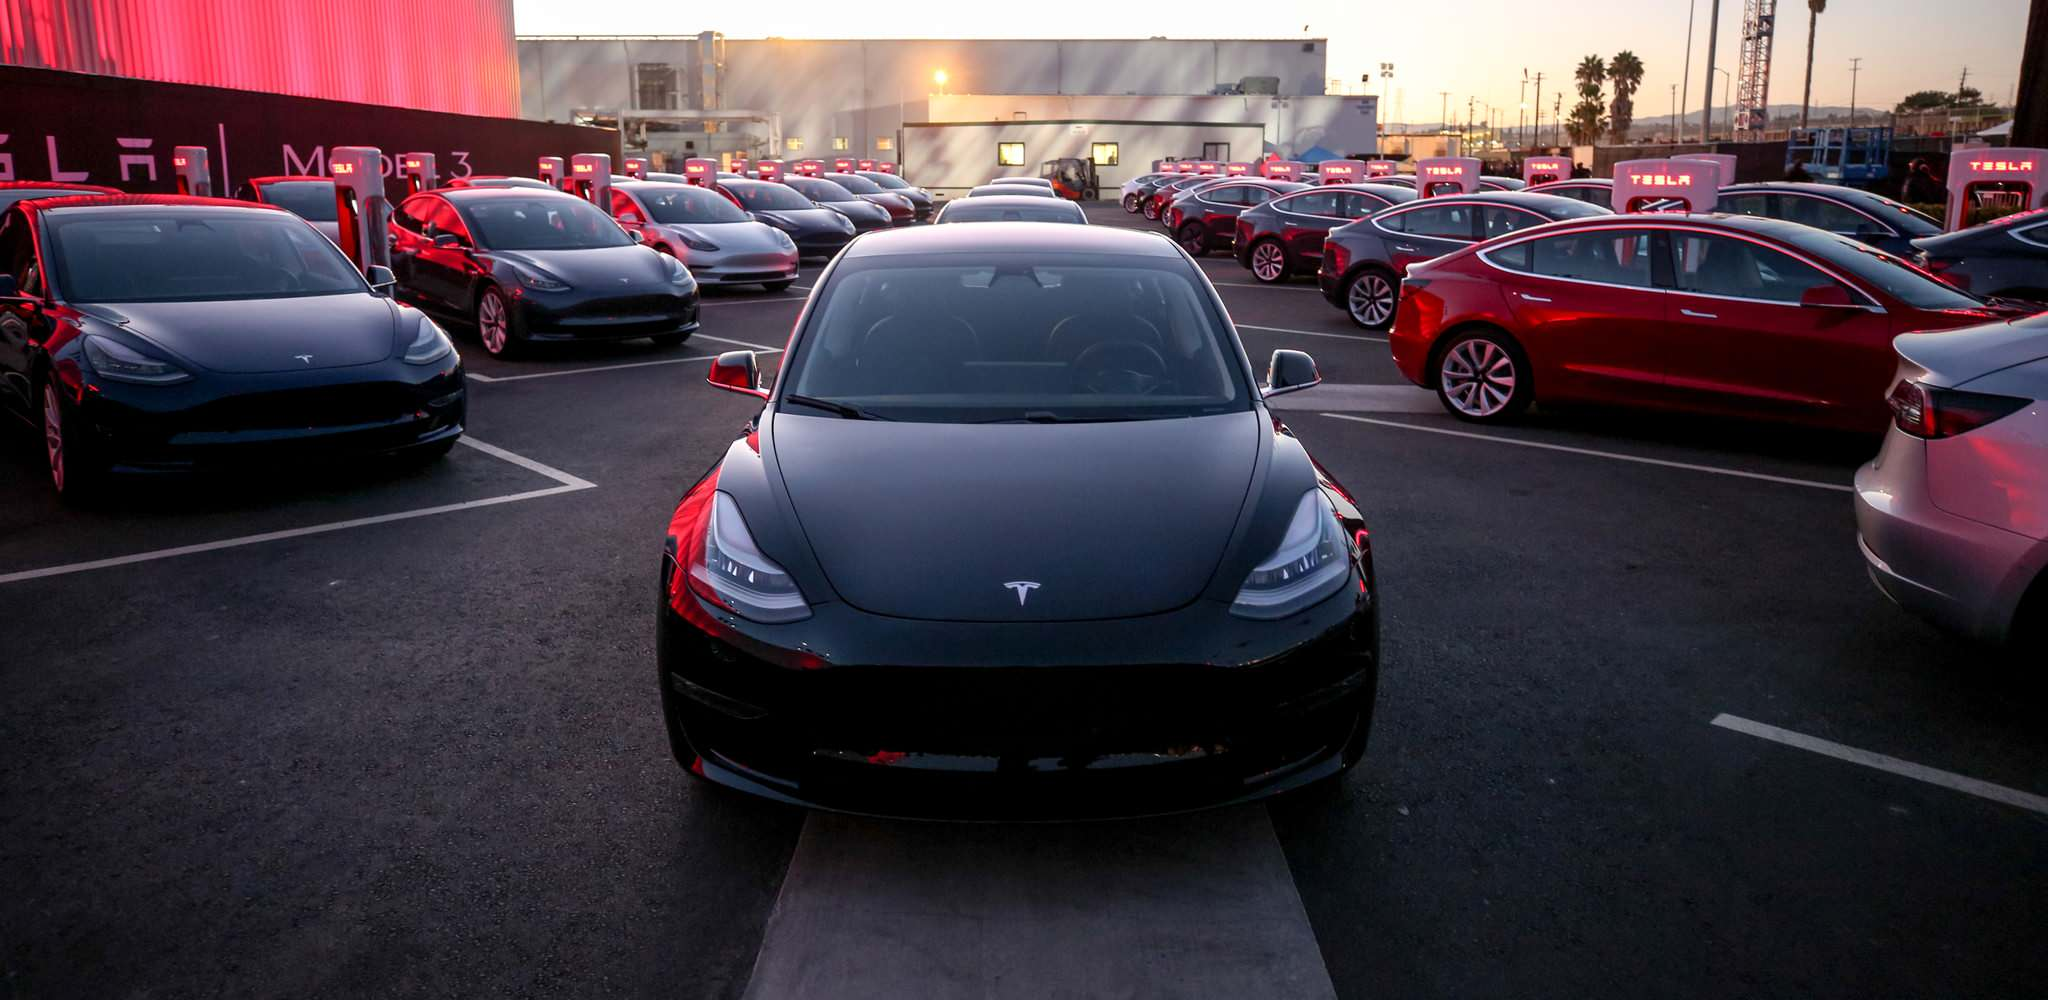 Tesla's delays in achieving Model 3's $35,000 price might open the door to other electric cars